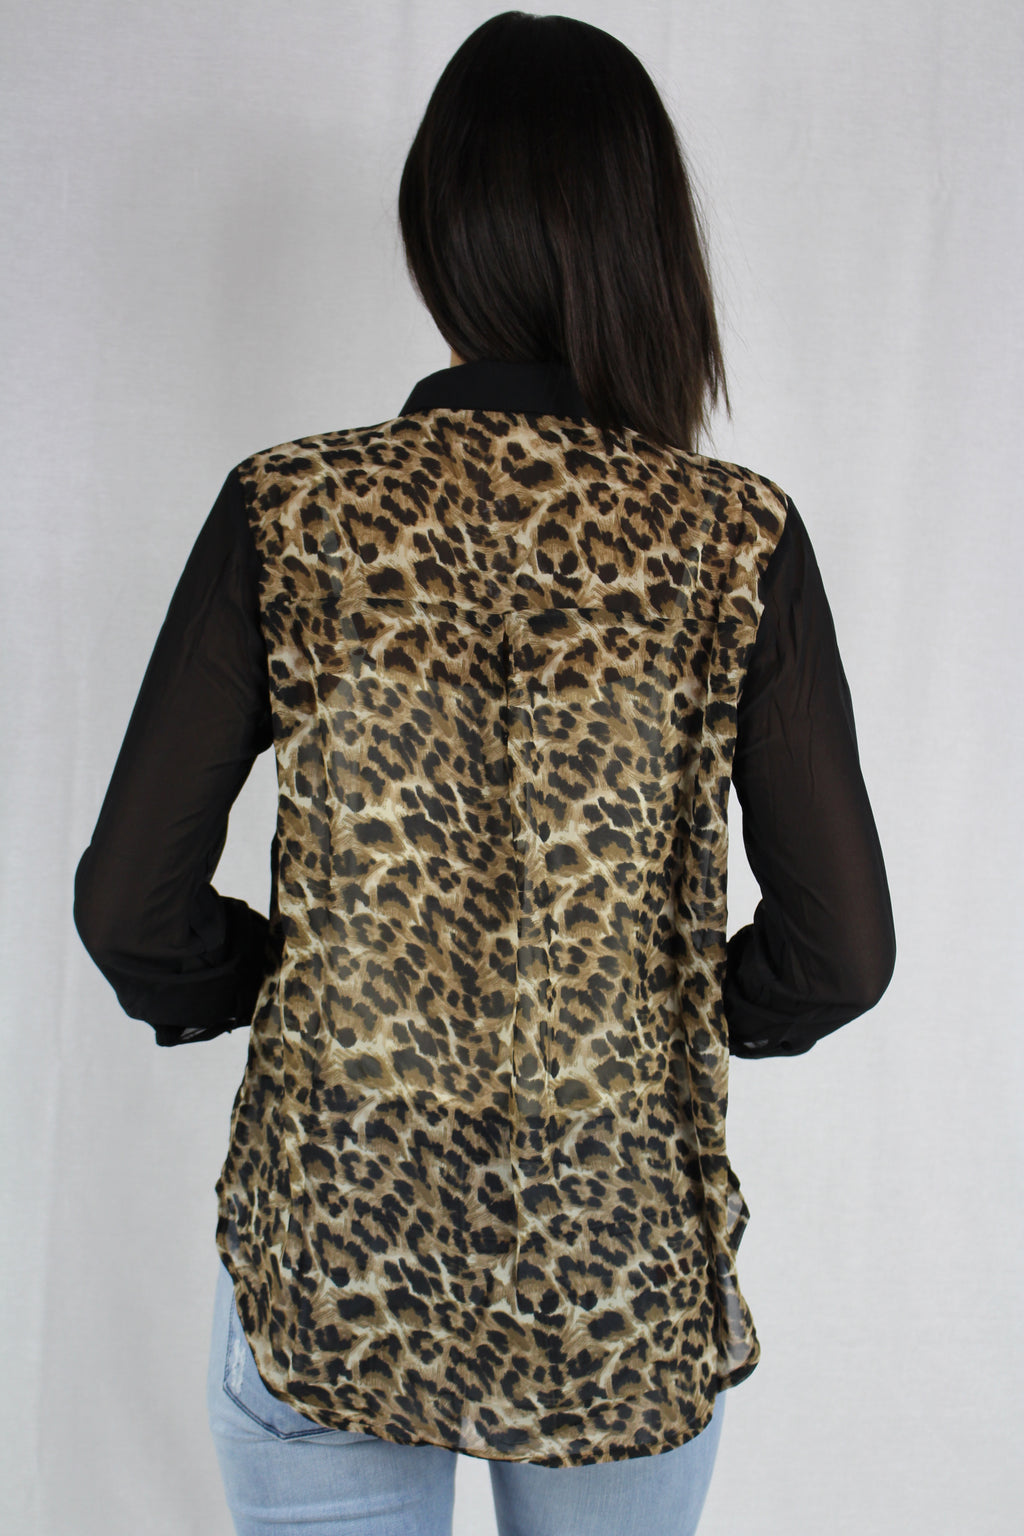 Women's Long Sleeve Sheer Collard Leopard Print Top